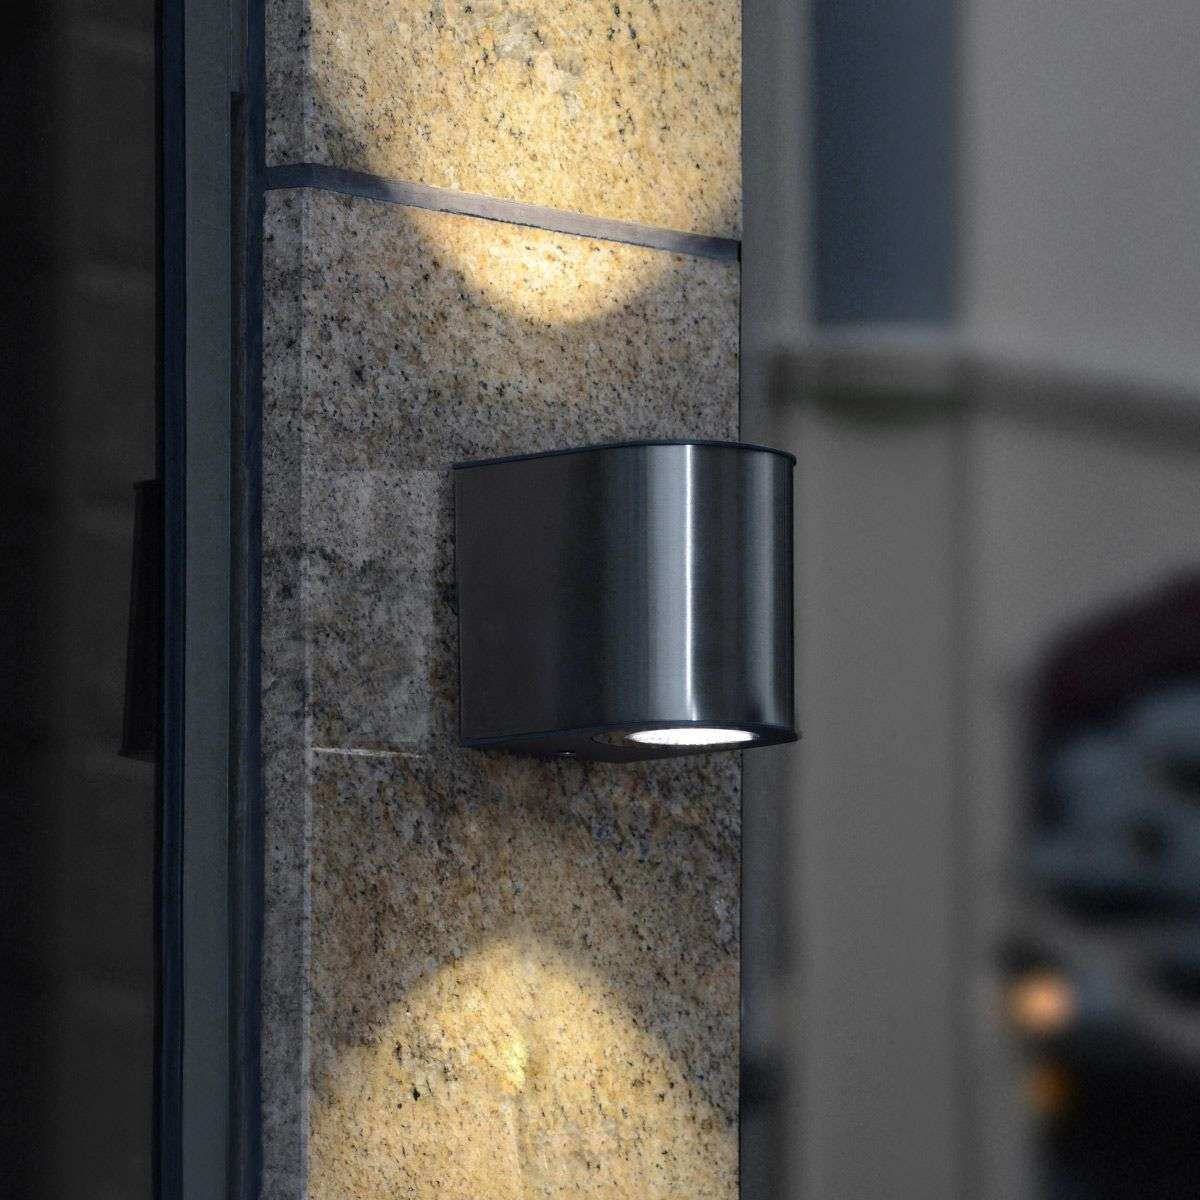 Osram External Wall Lights : Stylish Gemini IP54 LED exterior wall light Lights.co.uk